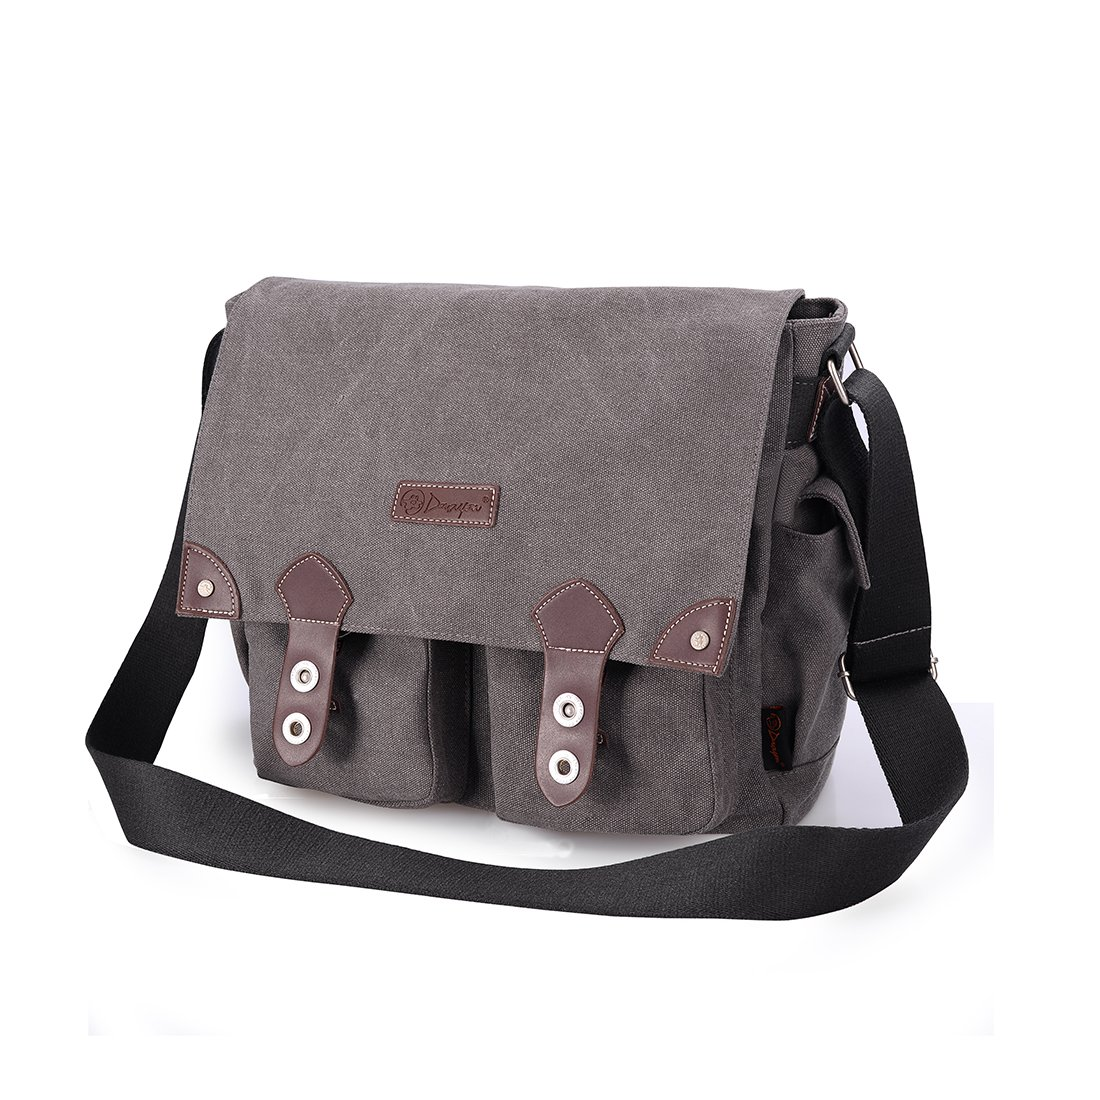 Douguyan Unisex Messenger Bag Fashionable and Best Style Backpack for Men and Women Grey 43608